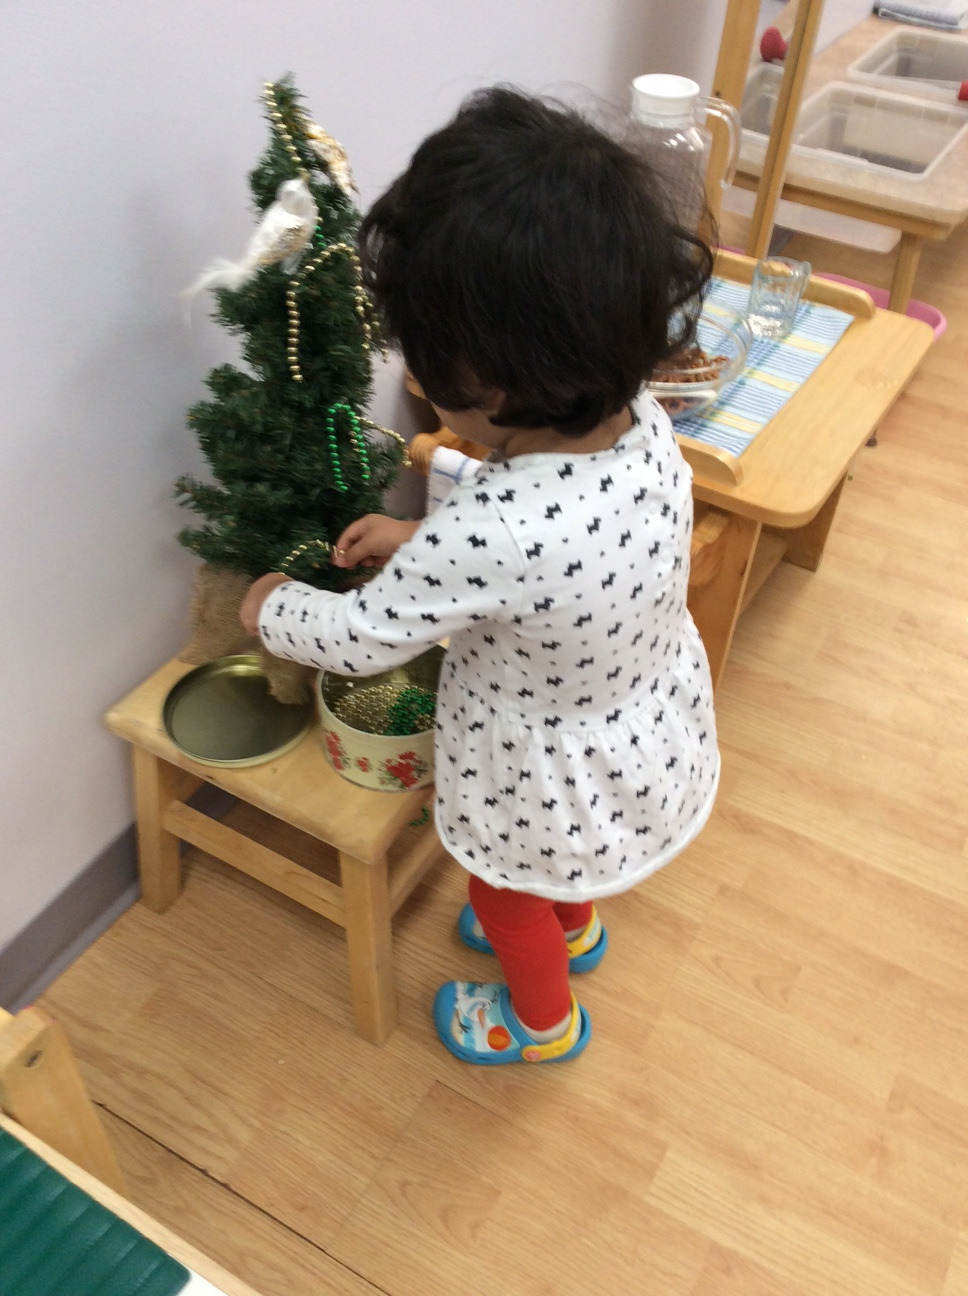 A Toddler 1 student decorated the little classroom Christmas tree, exercising her pincer grip.